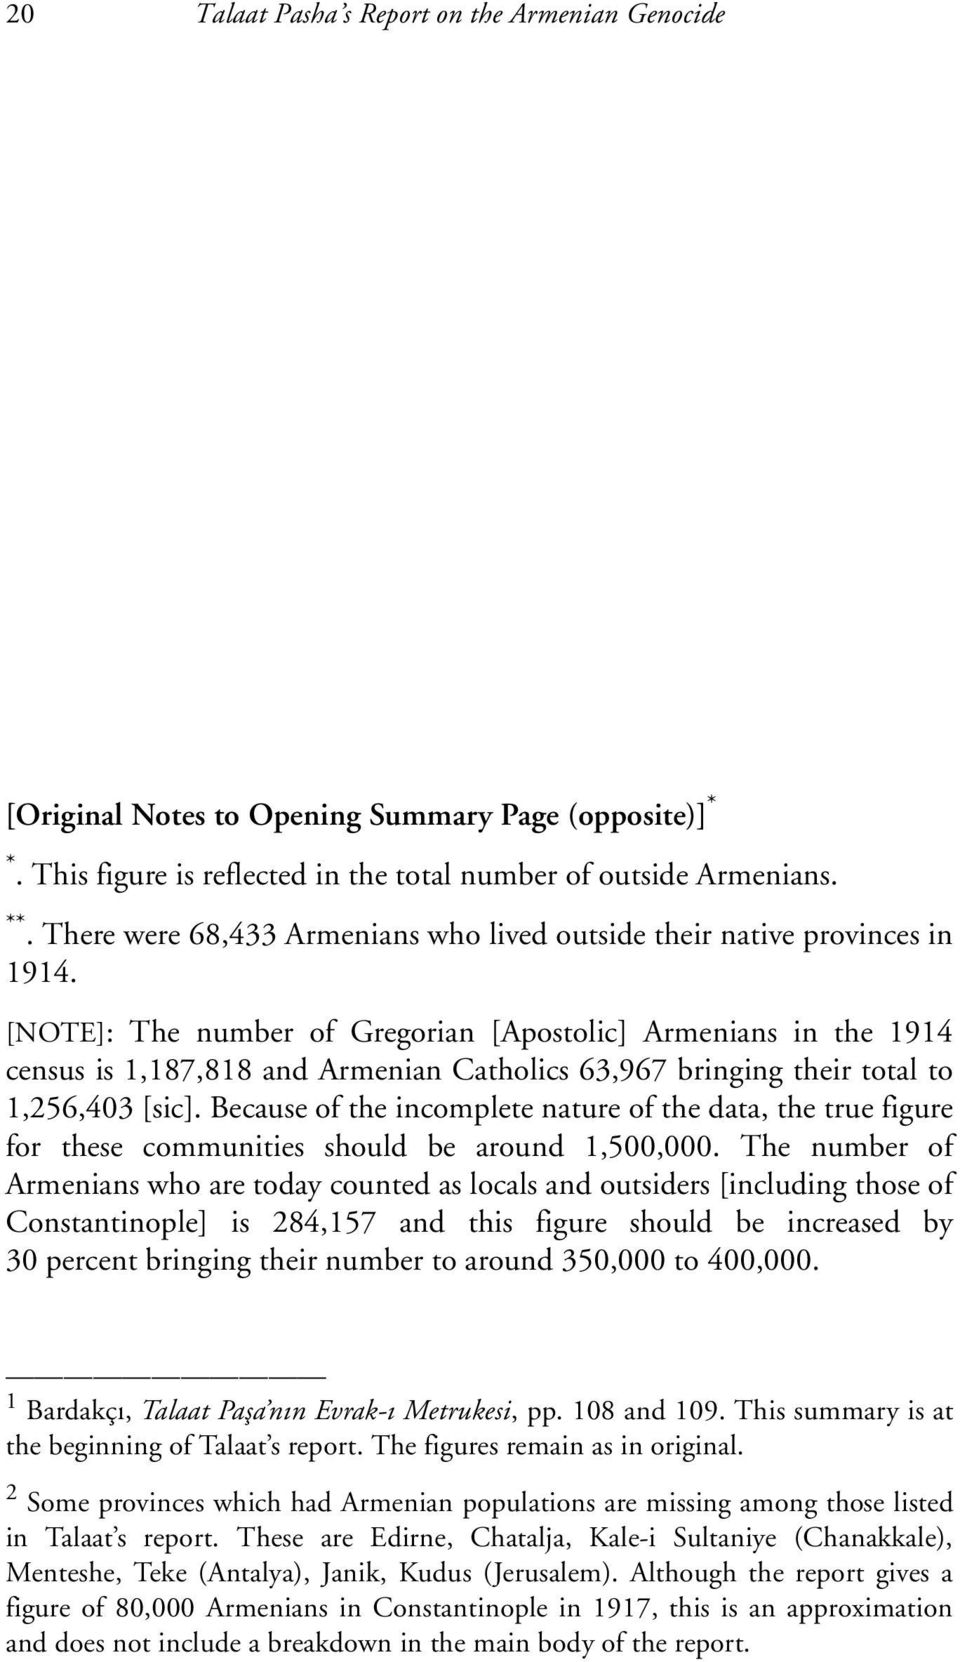 [NOTE]: The number of Gregorian [Apostolic] Armenians in the 1914 census is 1,187,818 and Armenian Catholics 63,967 bringing their total to 1,256,403 [sic].